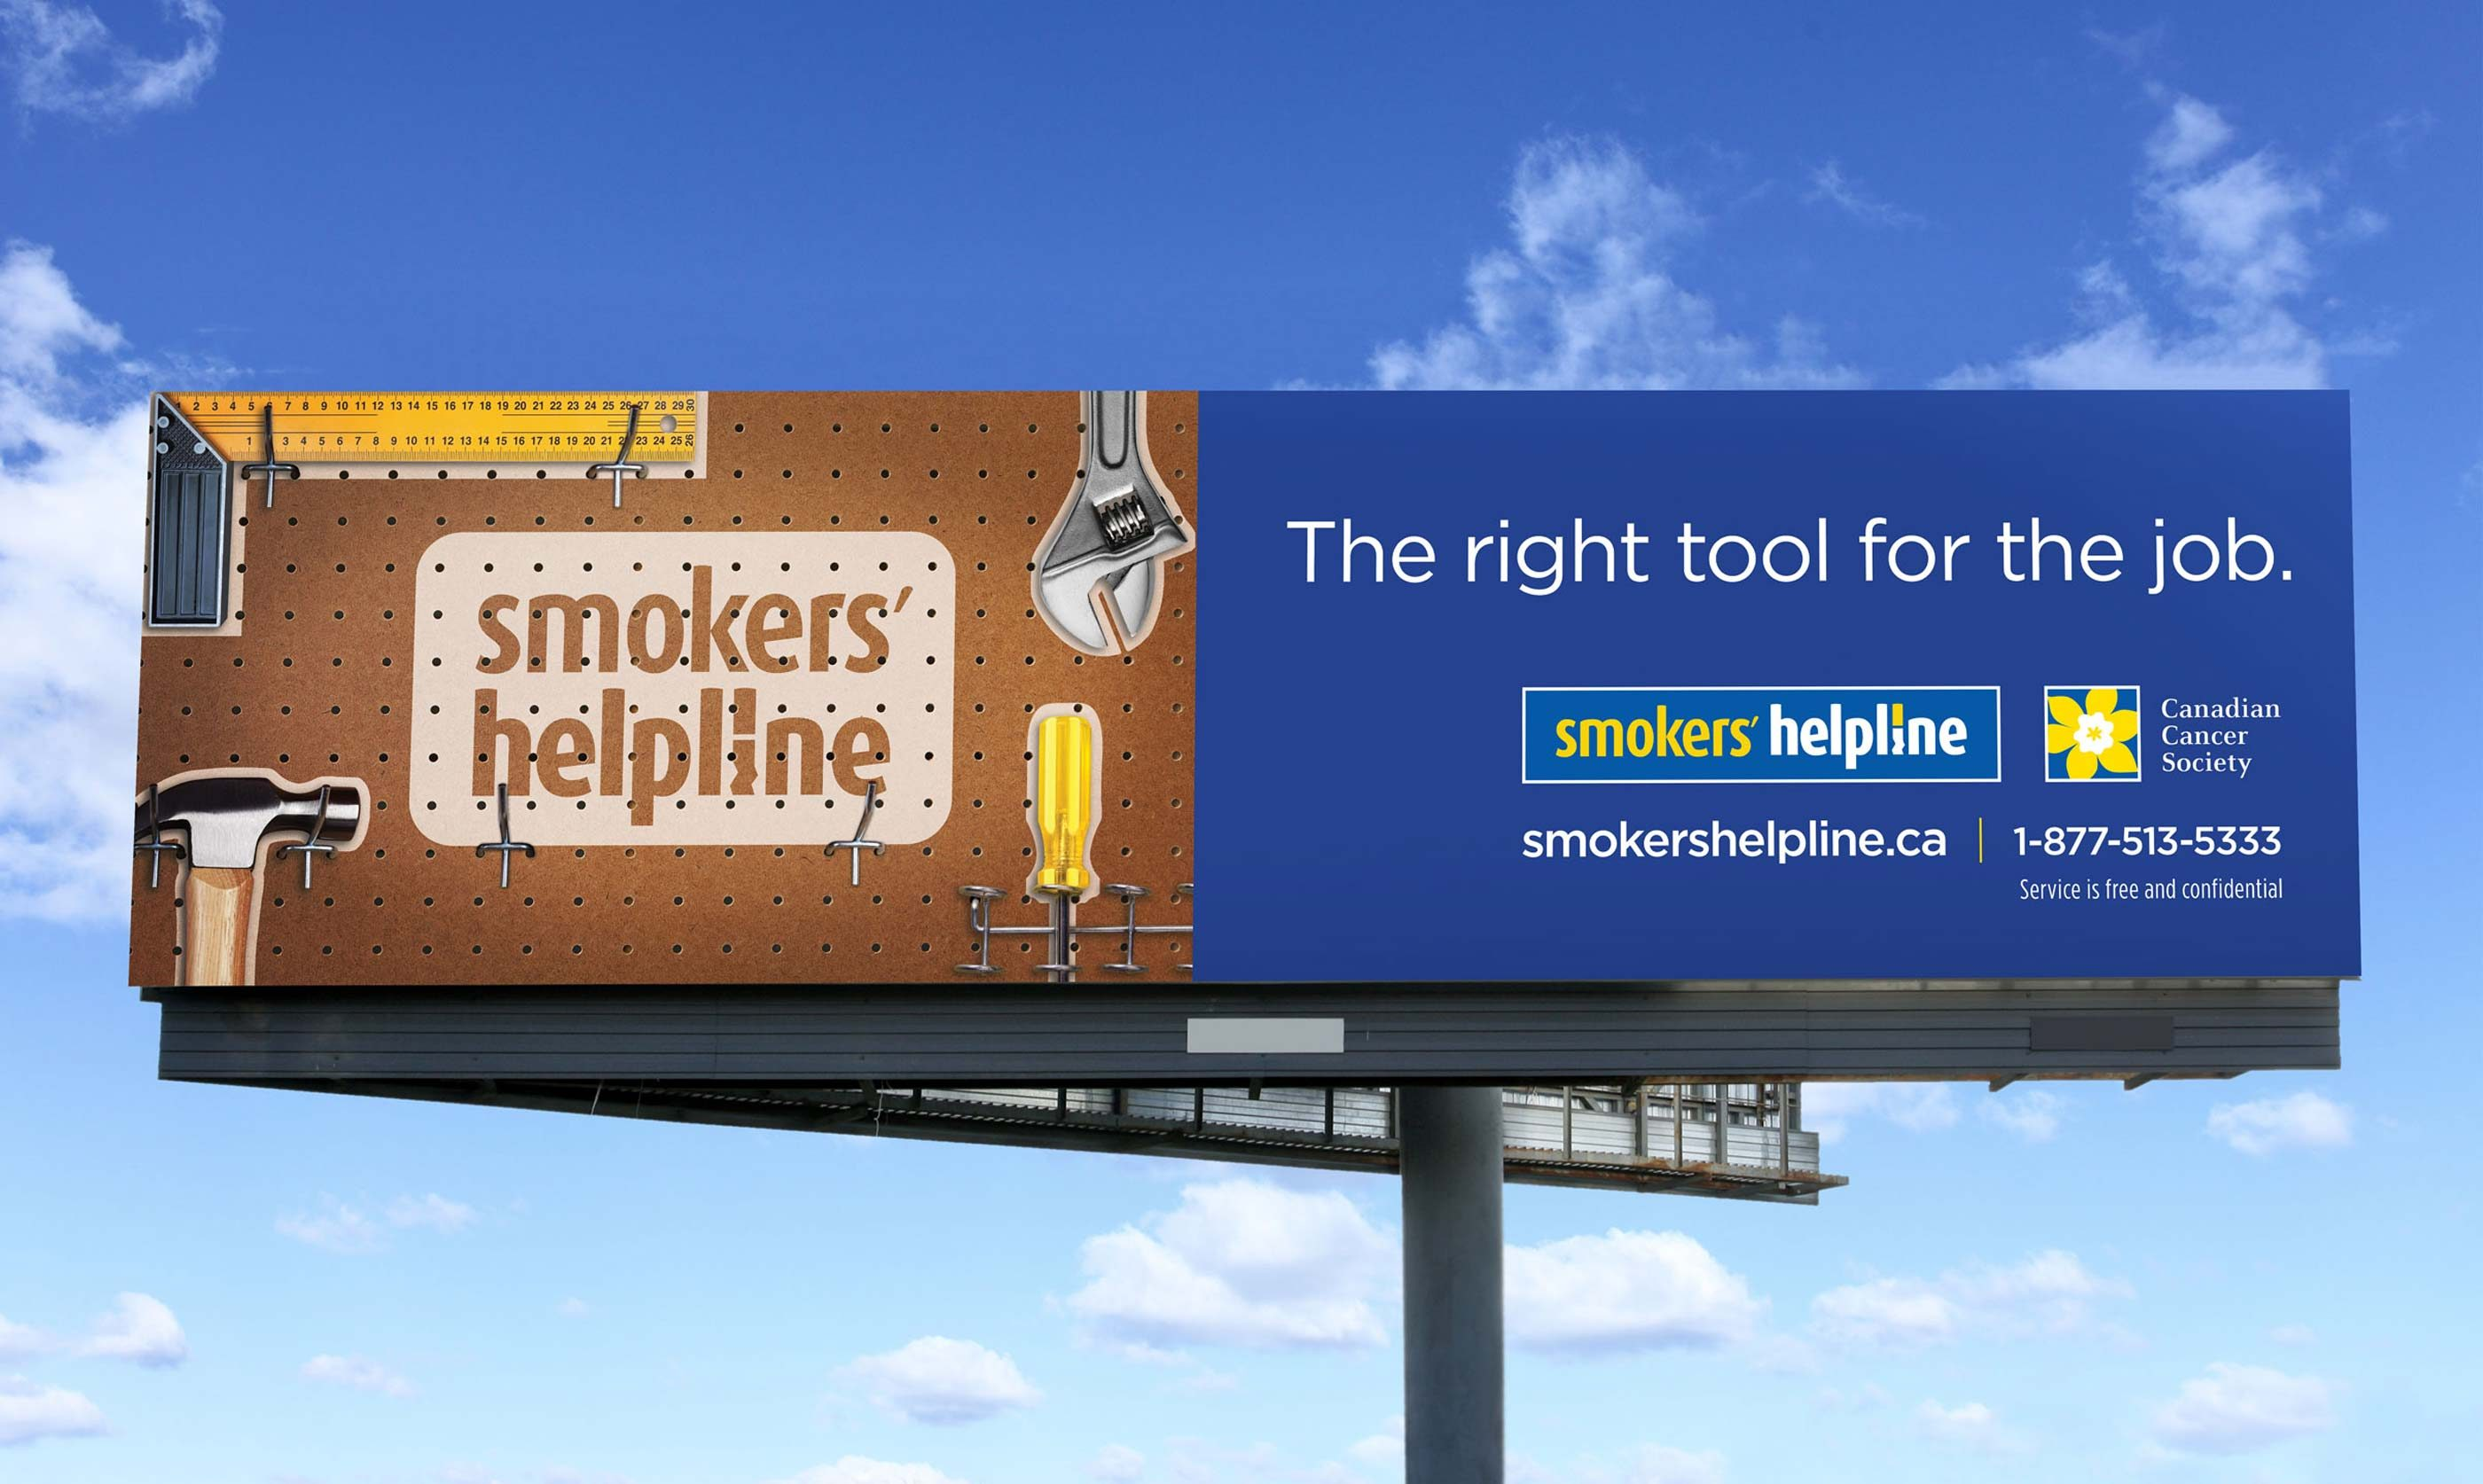 Work - Smokers' Helpline Superboard